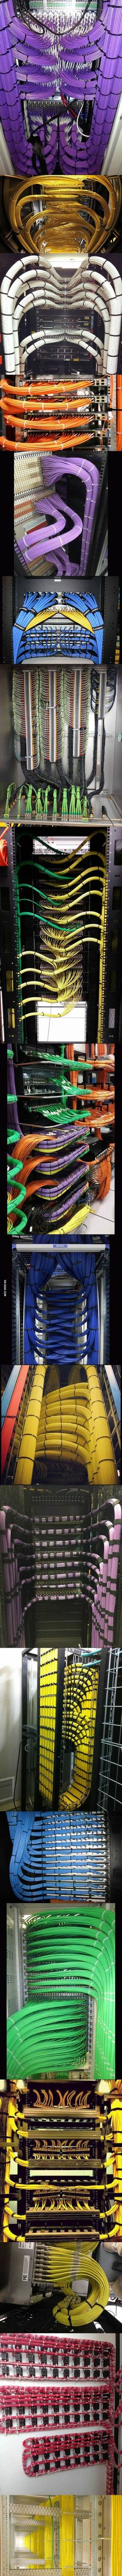 145 best 1001 Uses for a Cable Tie images on Pinterest   Cable tie ...